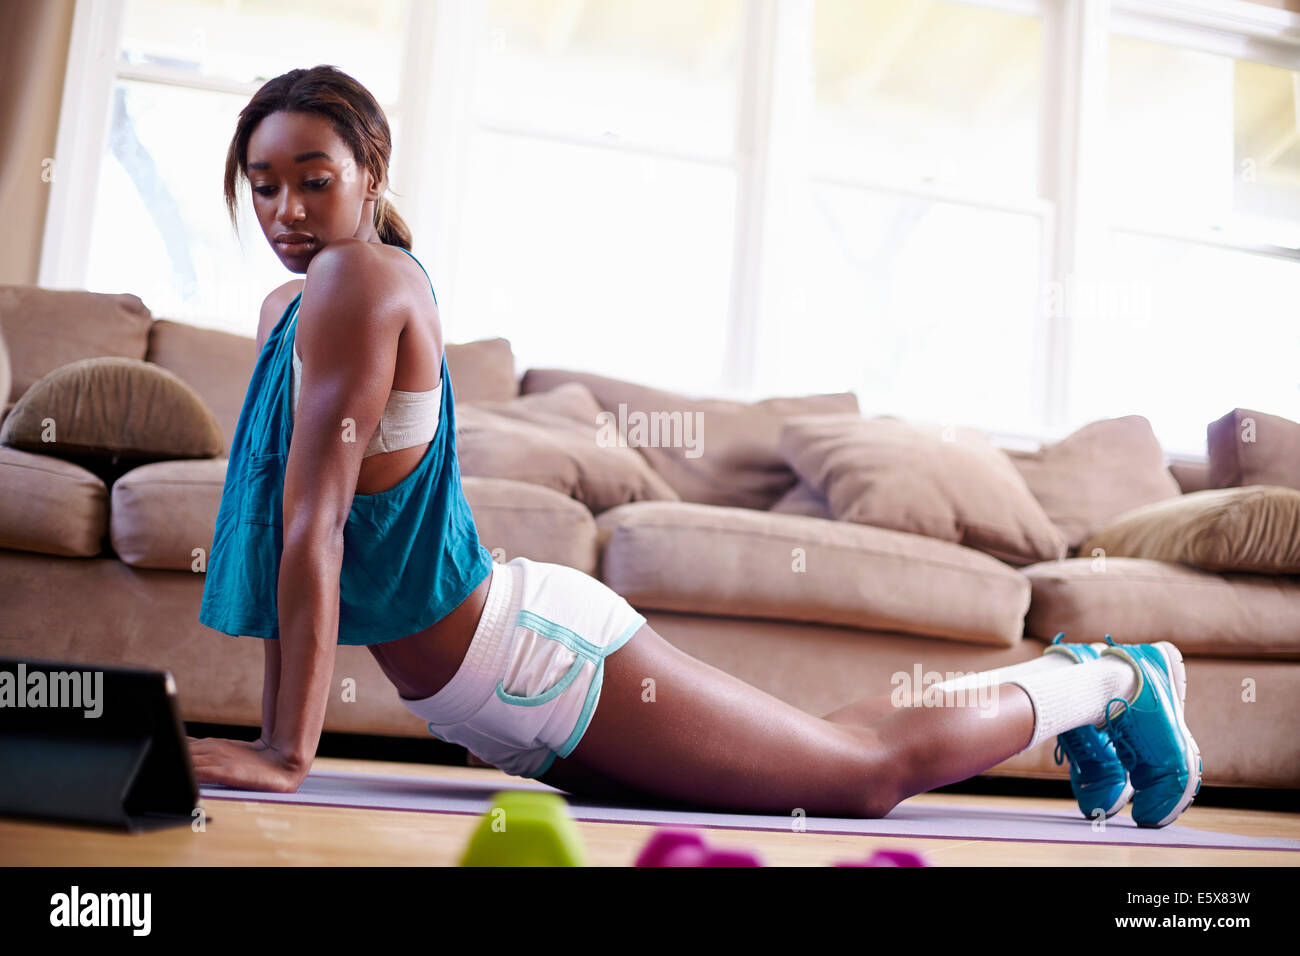 Young woman exercising on sitting room floor whilst looking at instruction on digital tablet - Stock Image